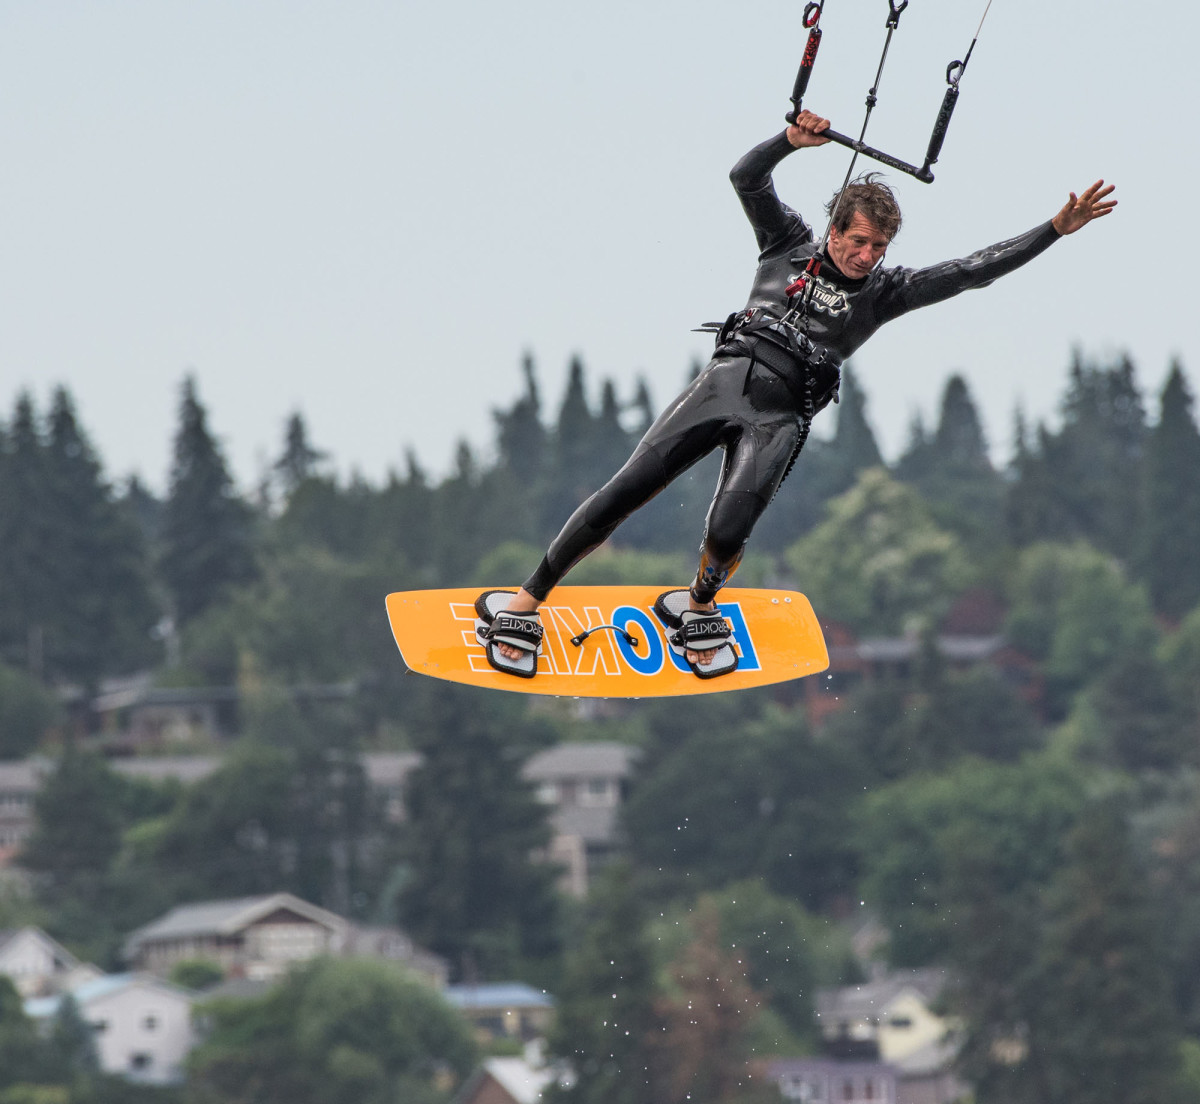 A daredevil show his stuff in Hood River, the kite surfing capital of the world.